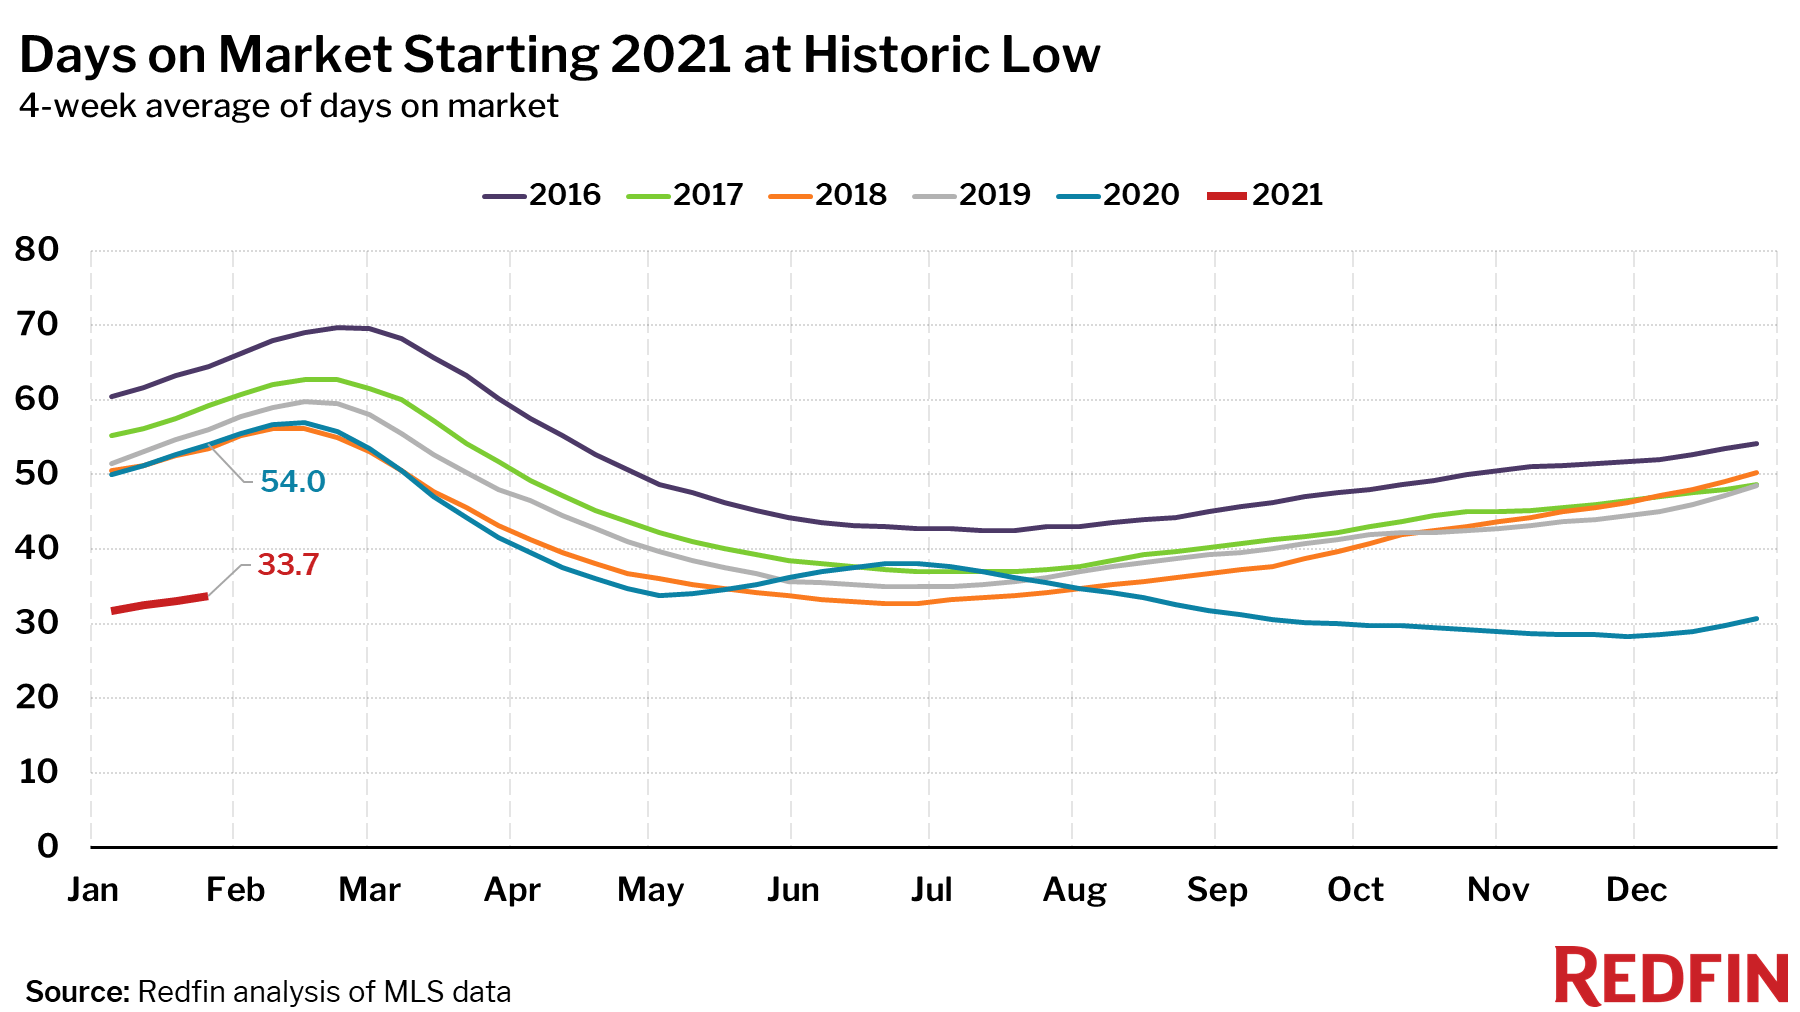 Days on market at historical lows as of 2021 - Redfin